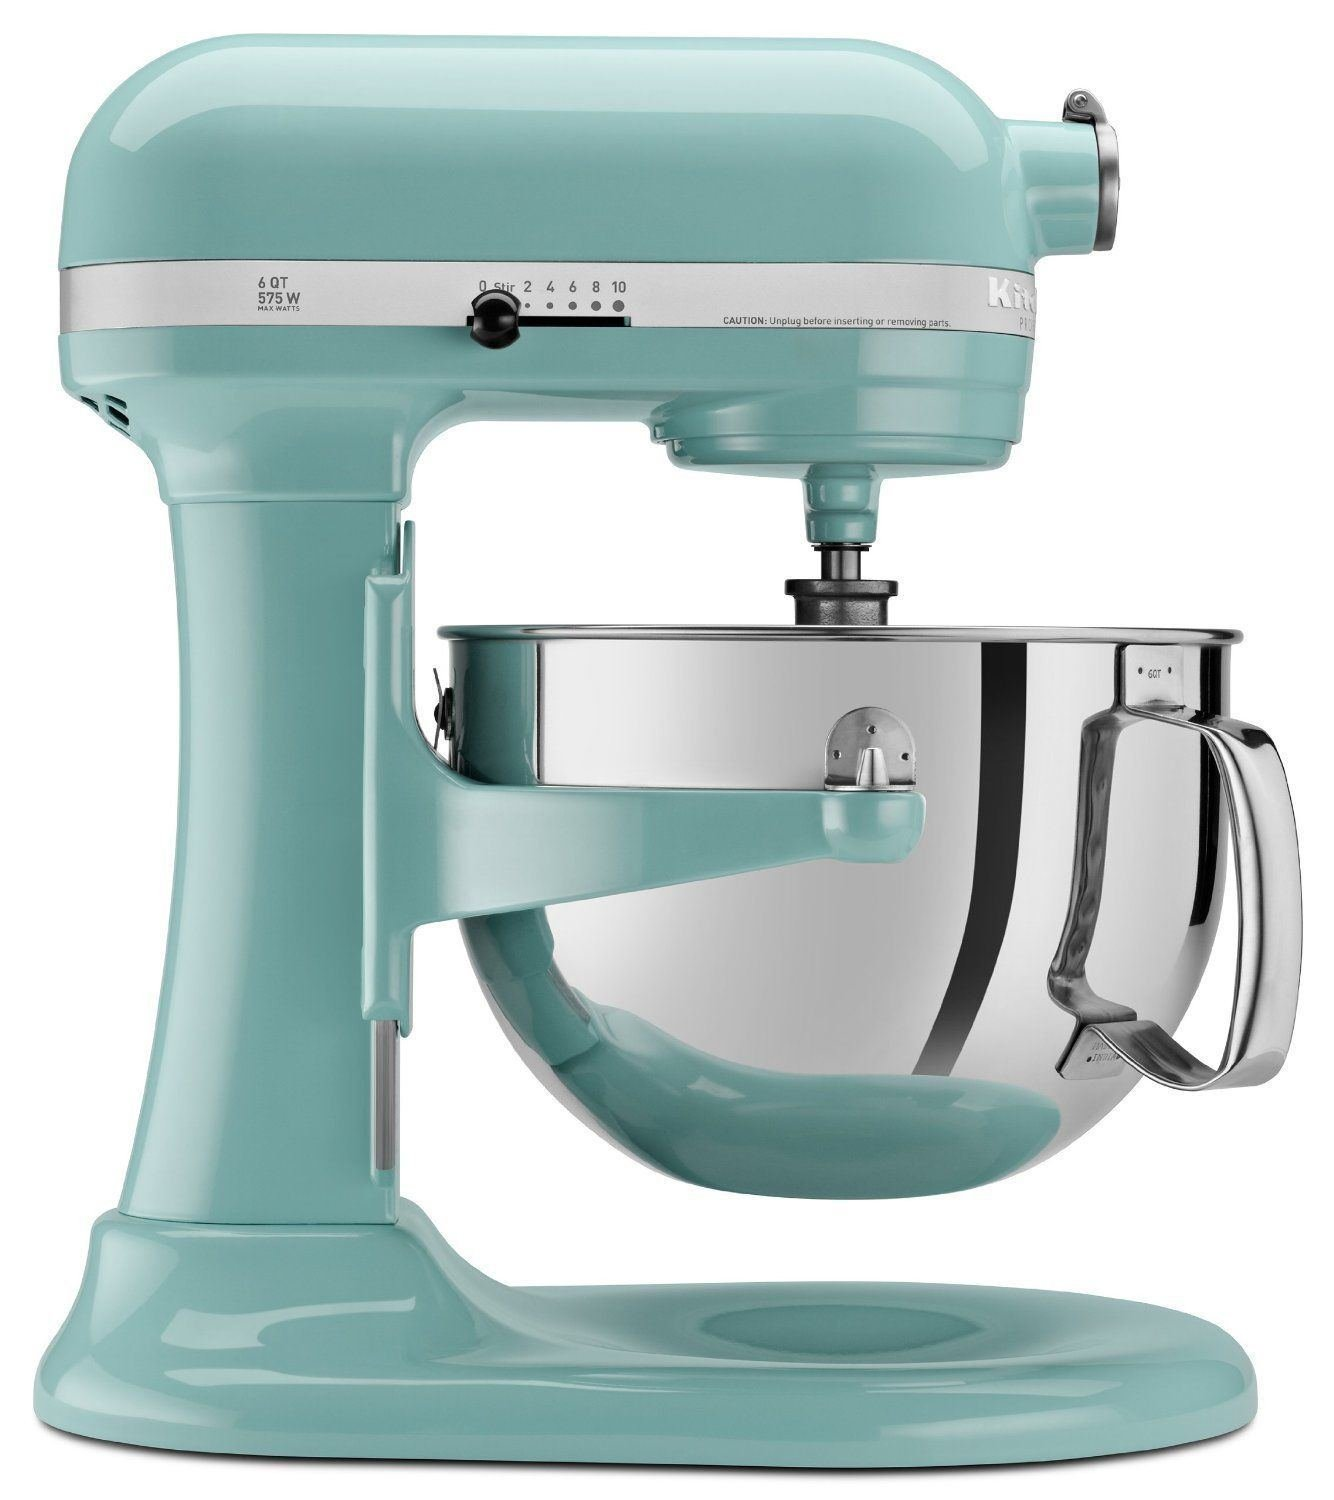 Amazon.com: Kitchenaid Professional 600 Stand Mixer 6 quart, Aqua ...